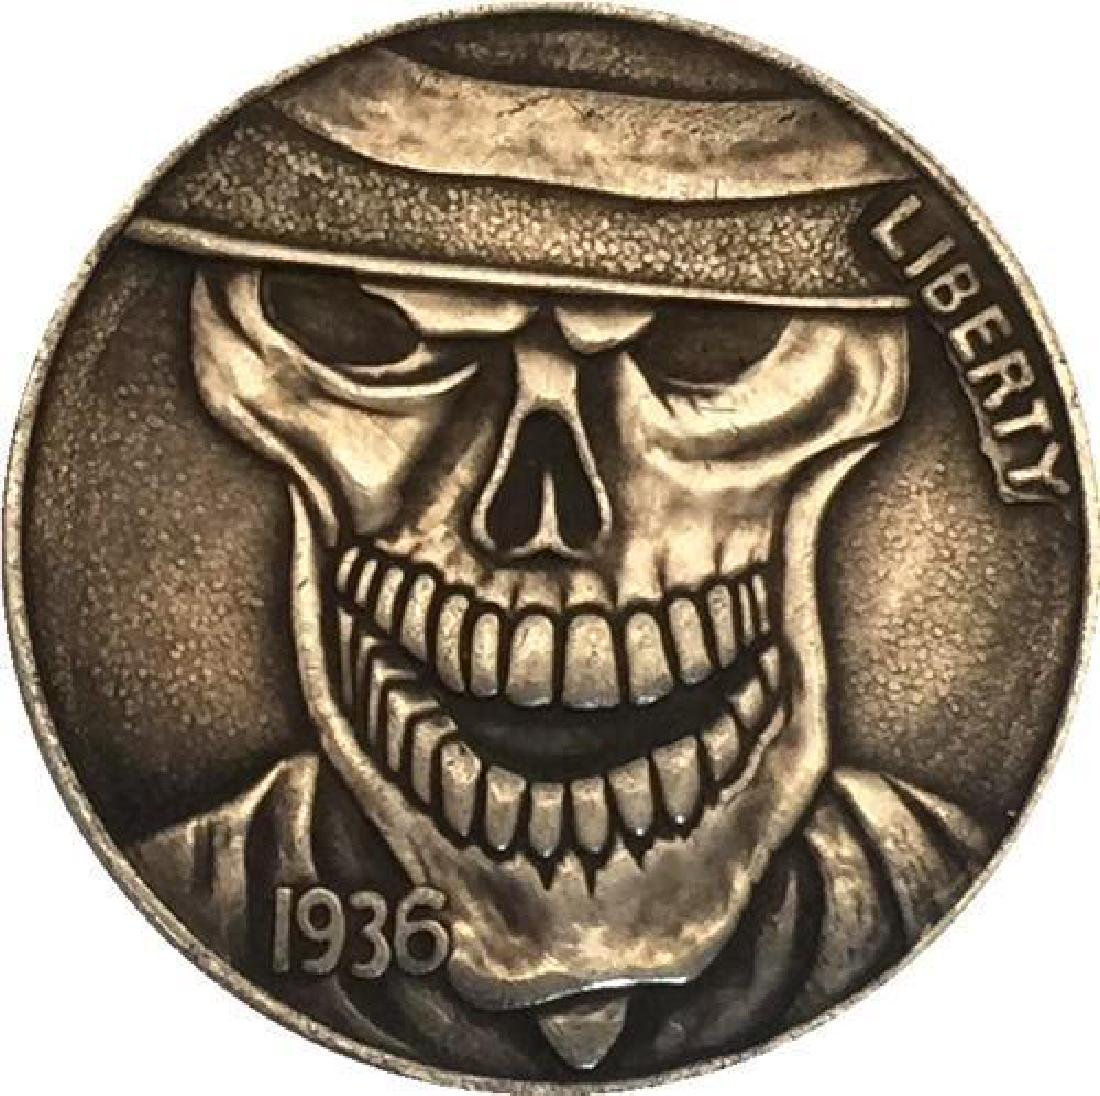 1936 USA Evil Skeleton Buffalo Nickel Coin